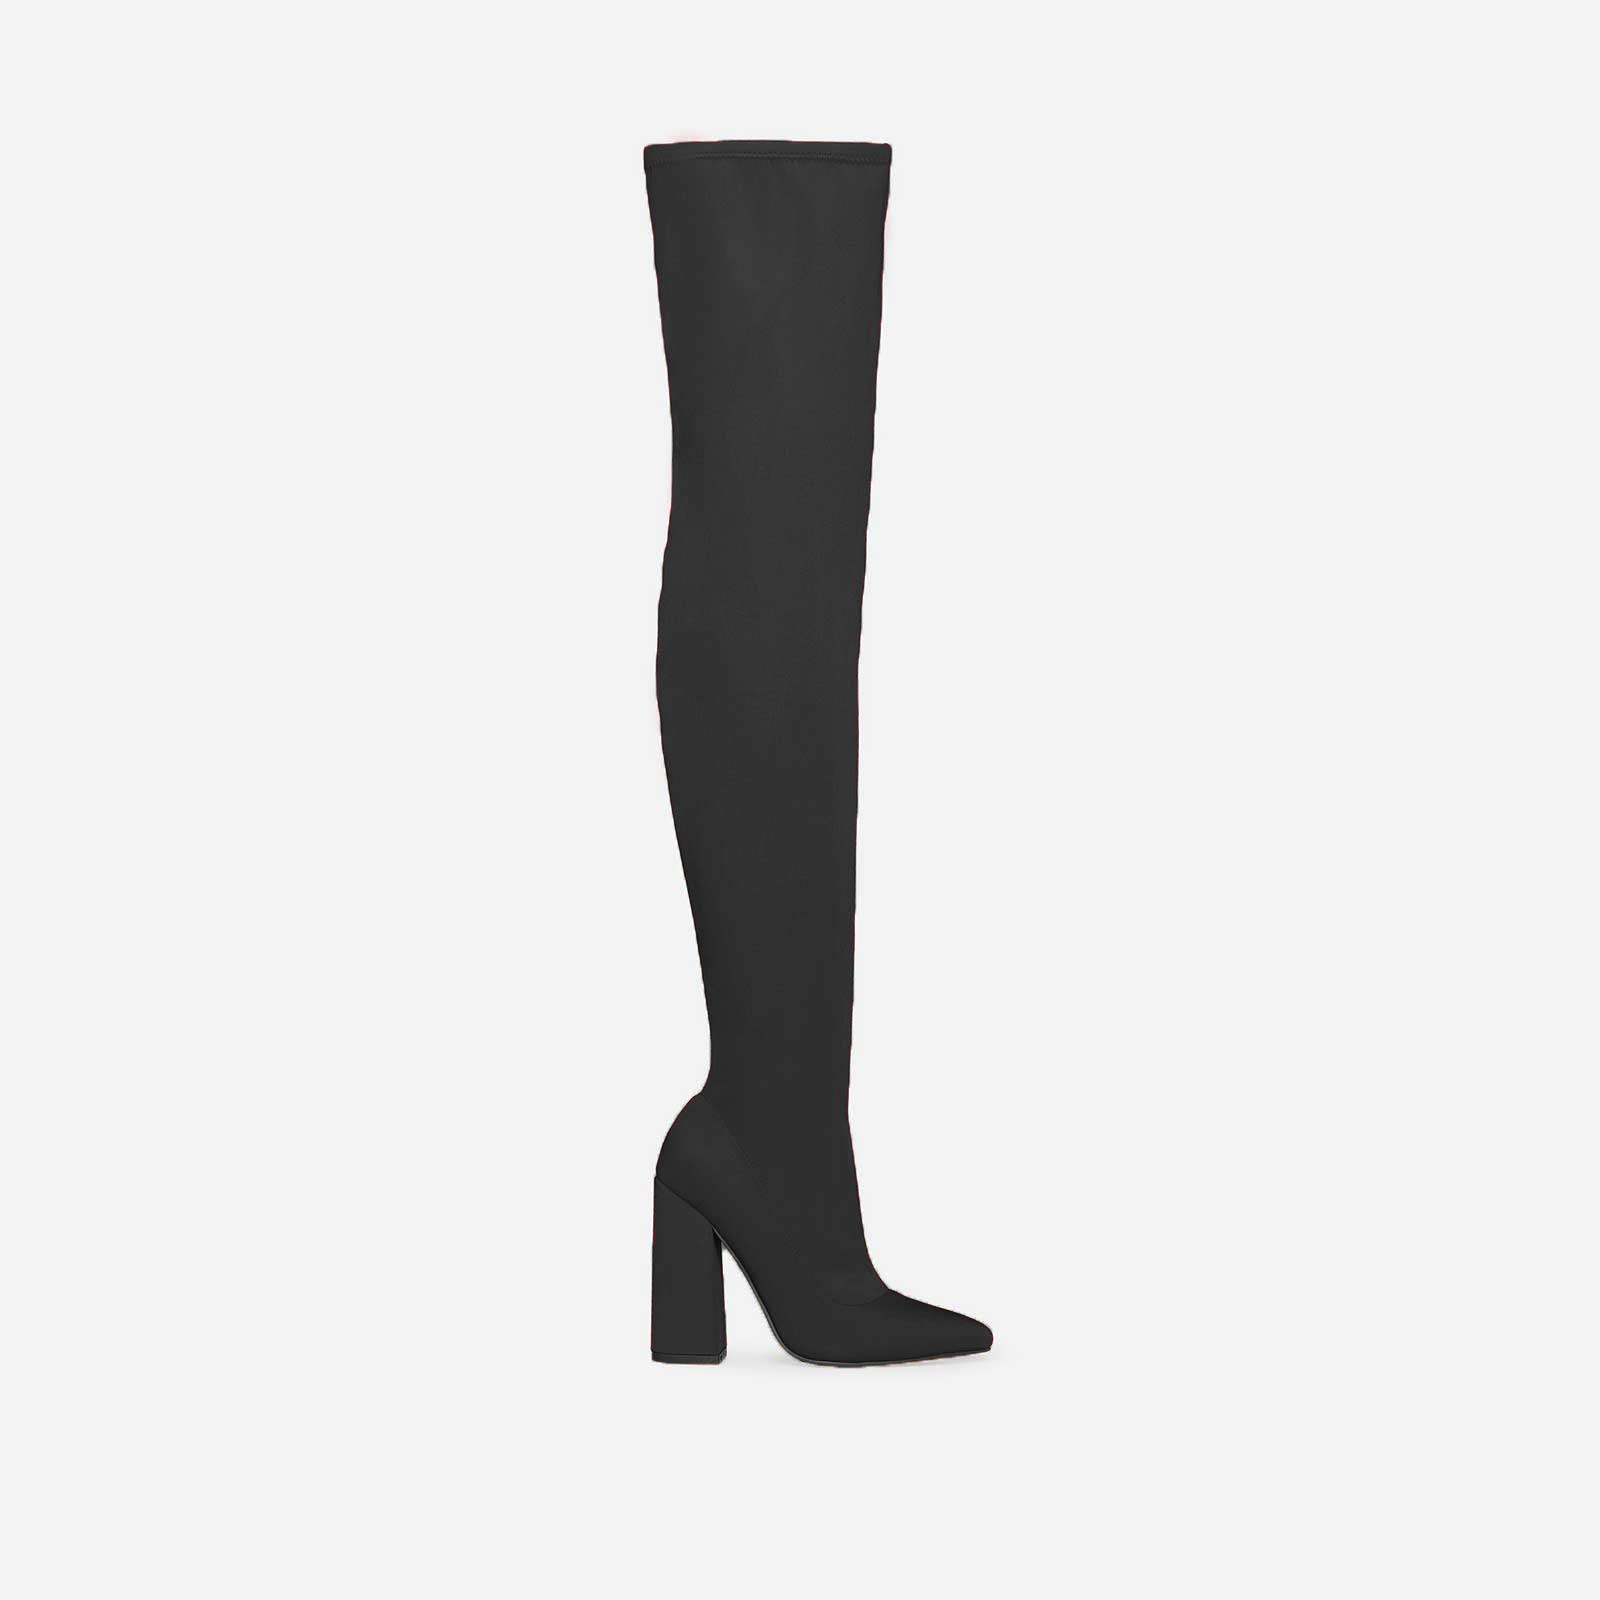 Arielle Flared Heel Thigh High Long Boot In Black Lycra